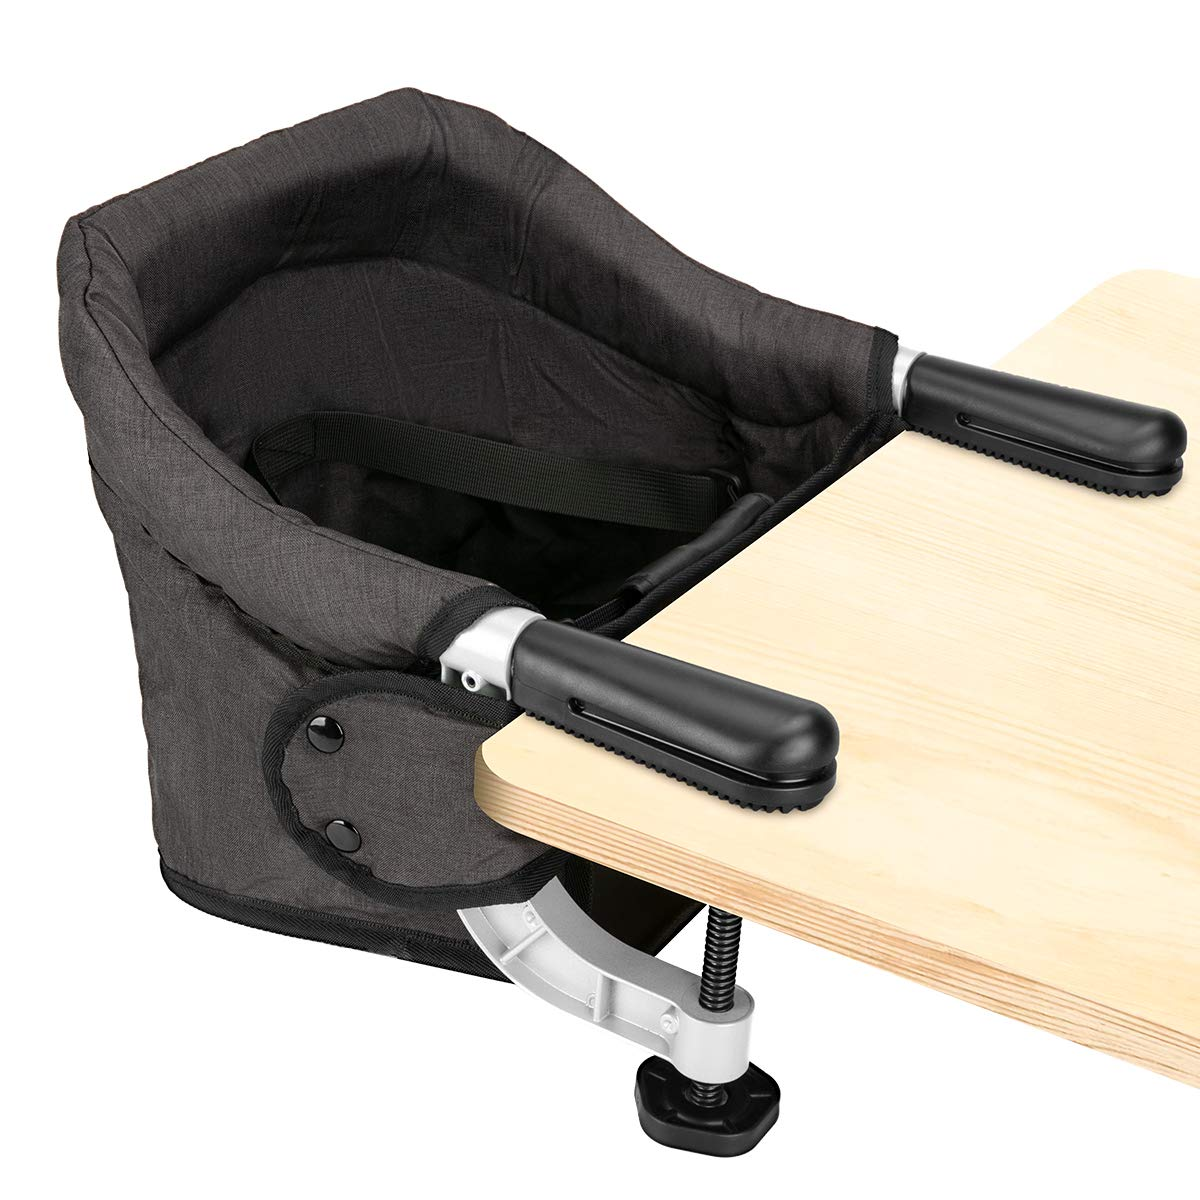 Hook On Chair, Fast Table Chair for Babies and Toddlers, Removable Seat Cushion, Tight Fixing Clip on Table High Chair (Black)